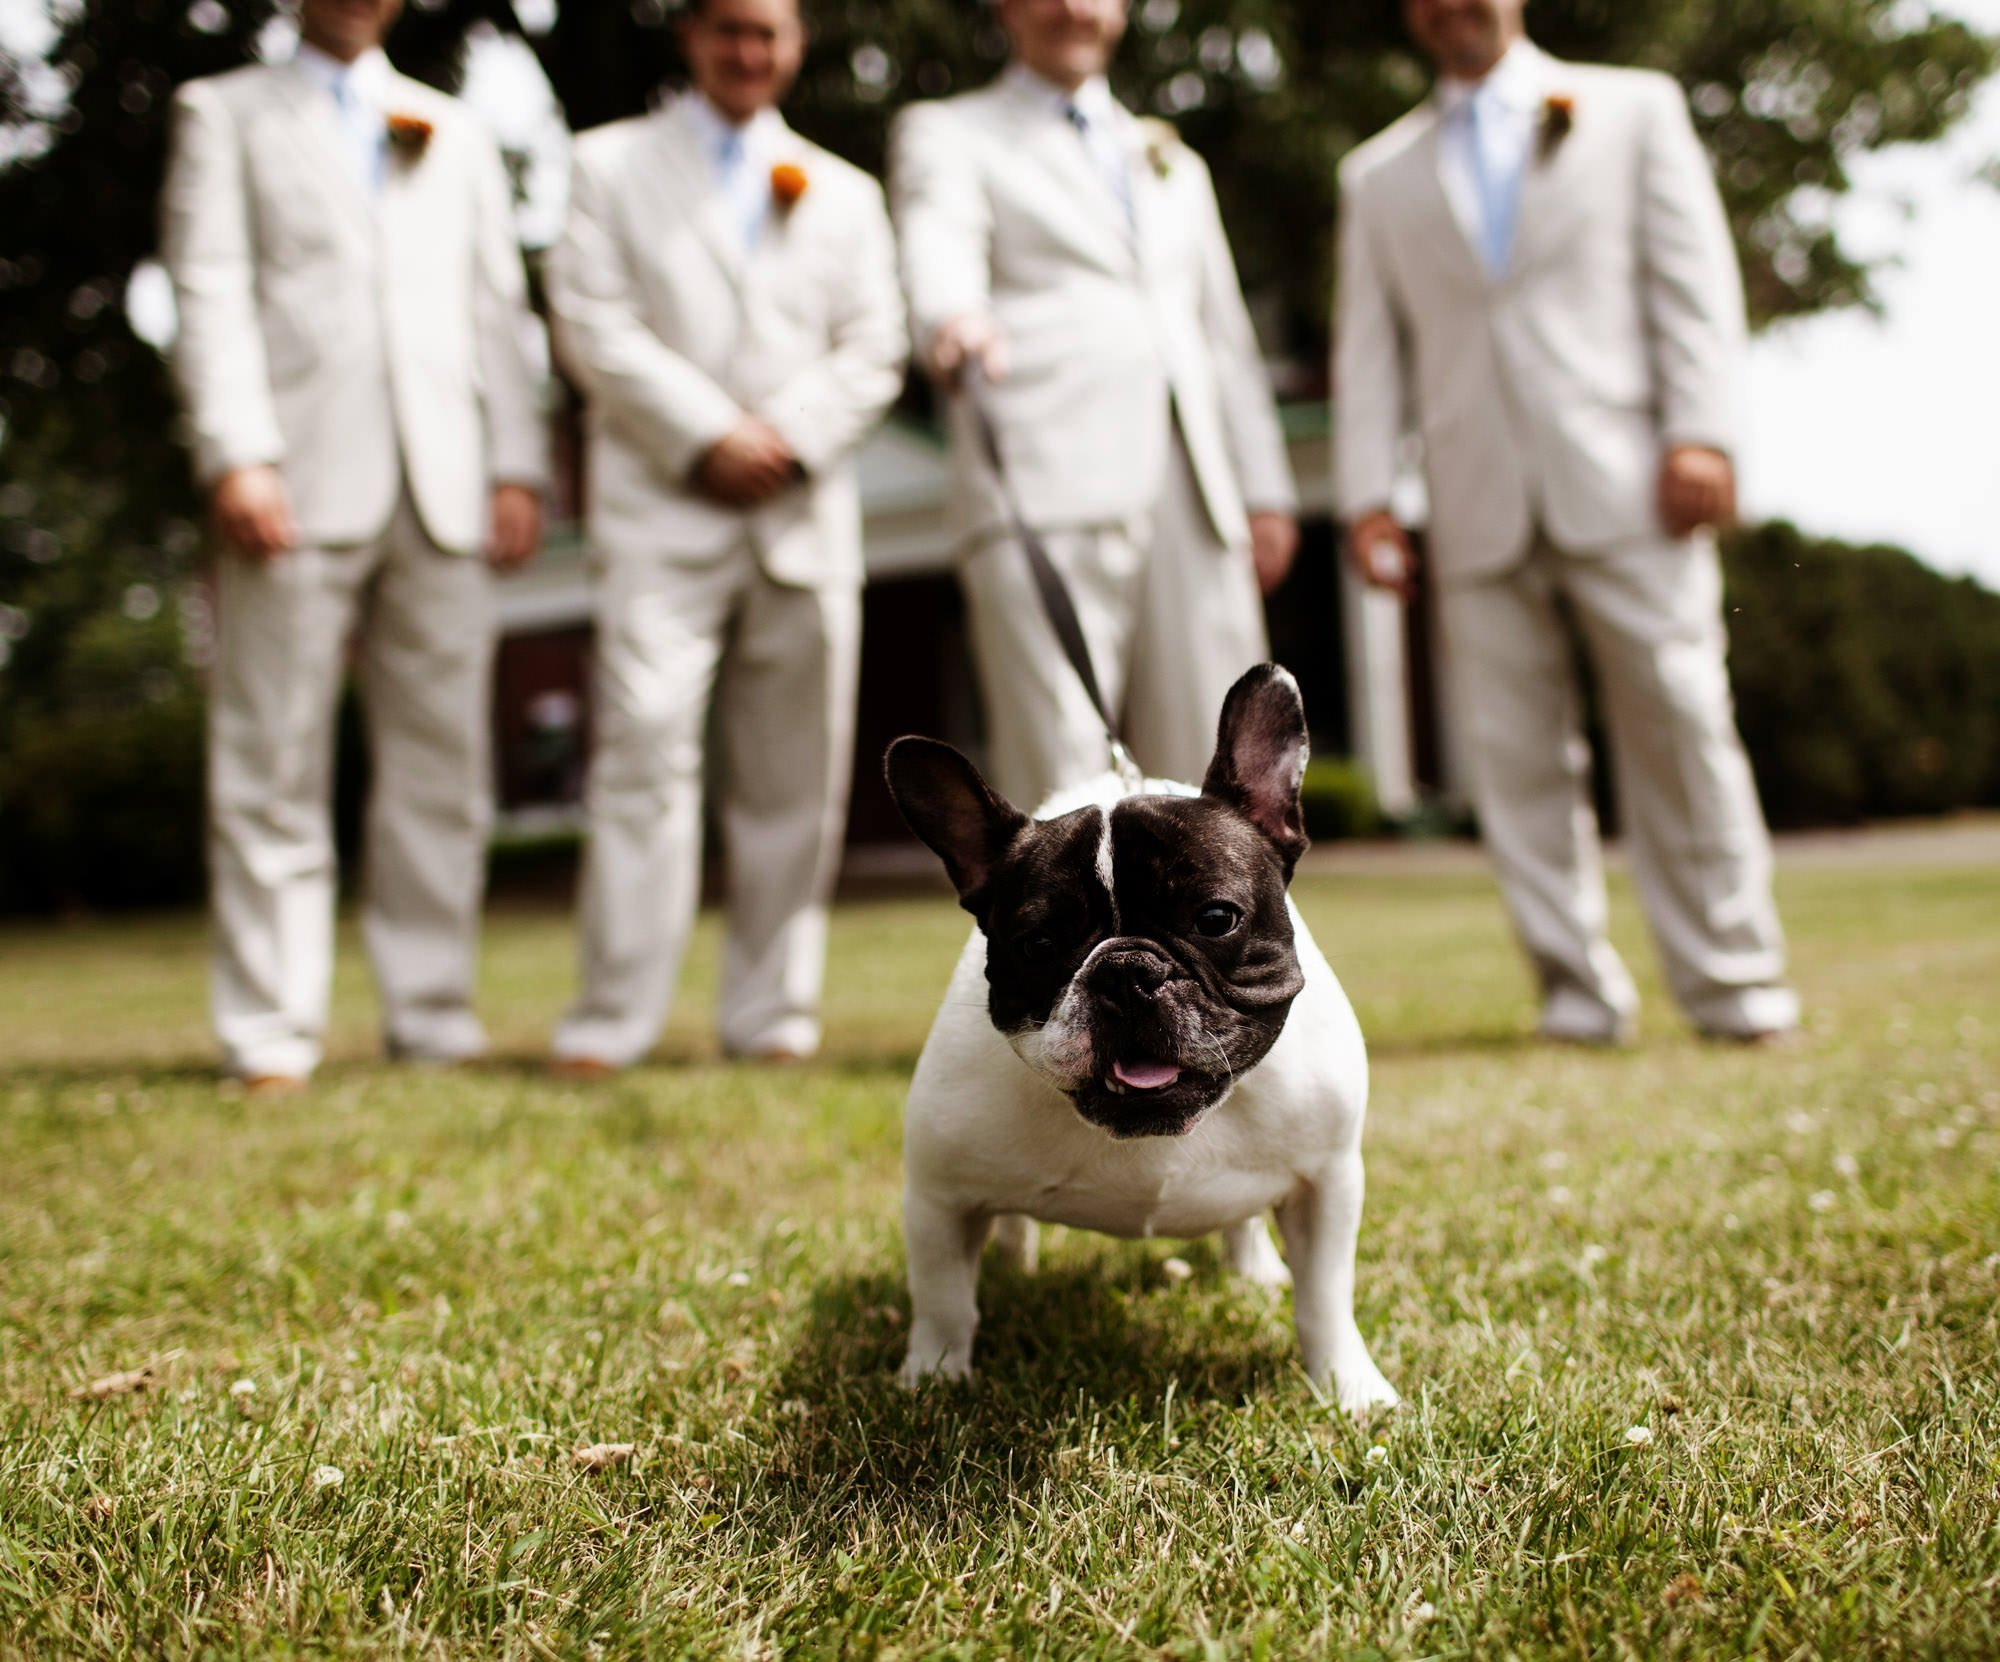 A dog poses for a portrait with the groomsmen before the wedding ceremony at Marriott Ranch.